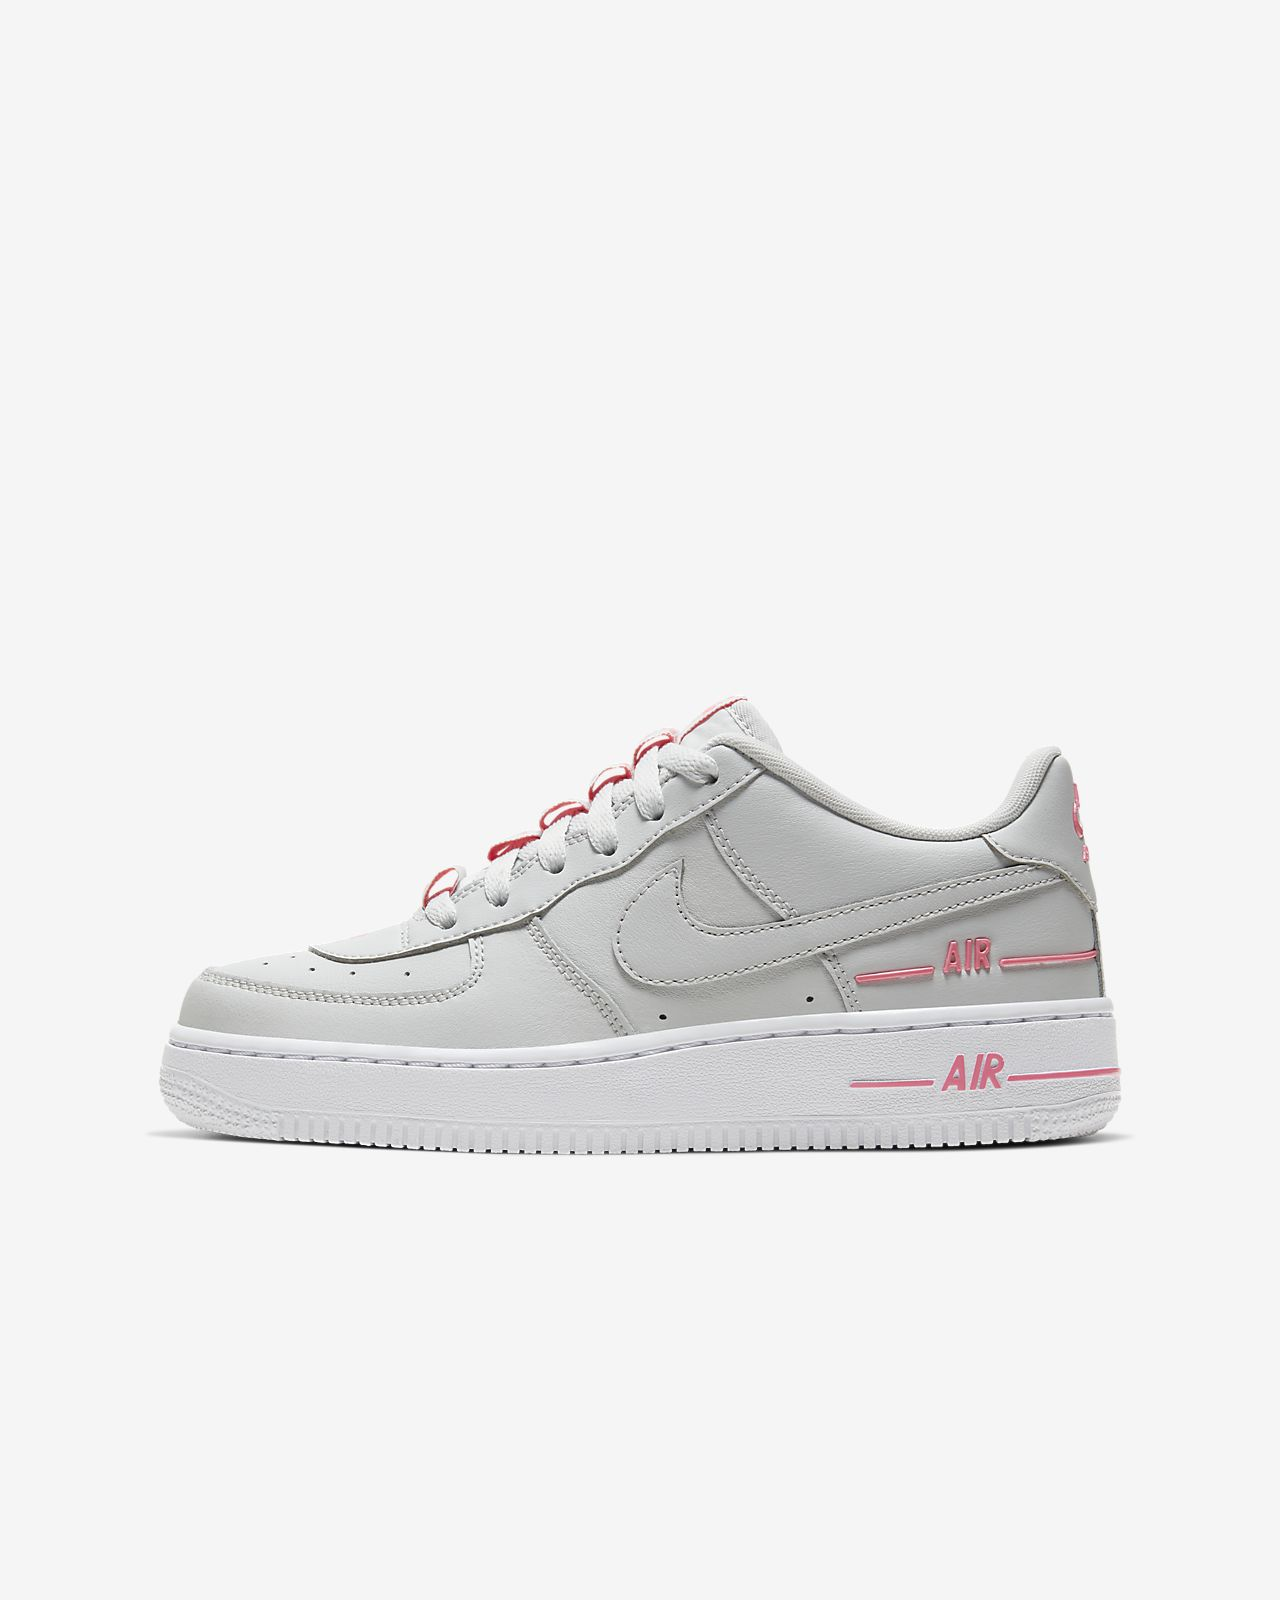 Nike Air Force 1 LV8 női cipő